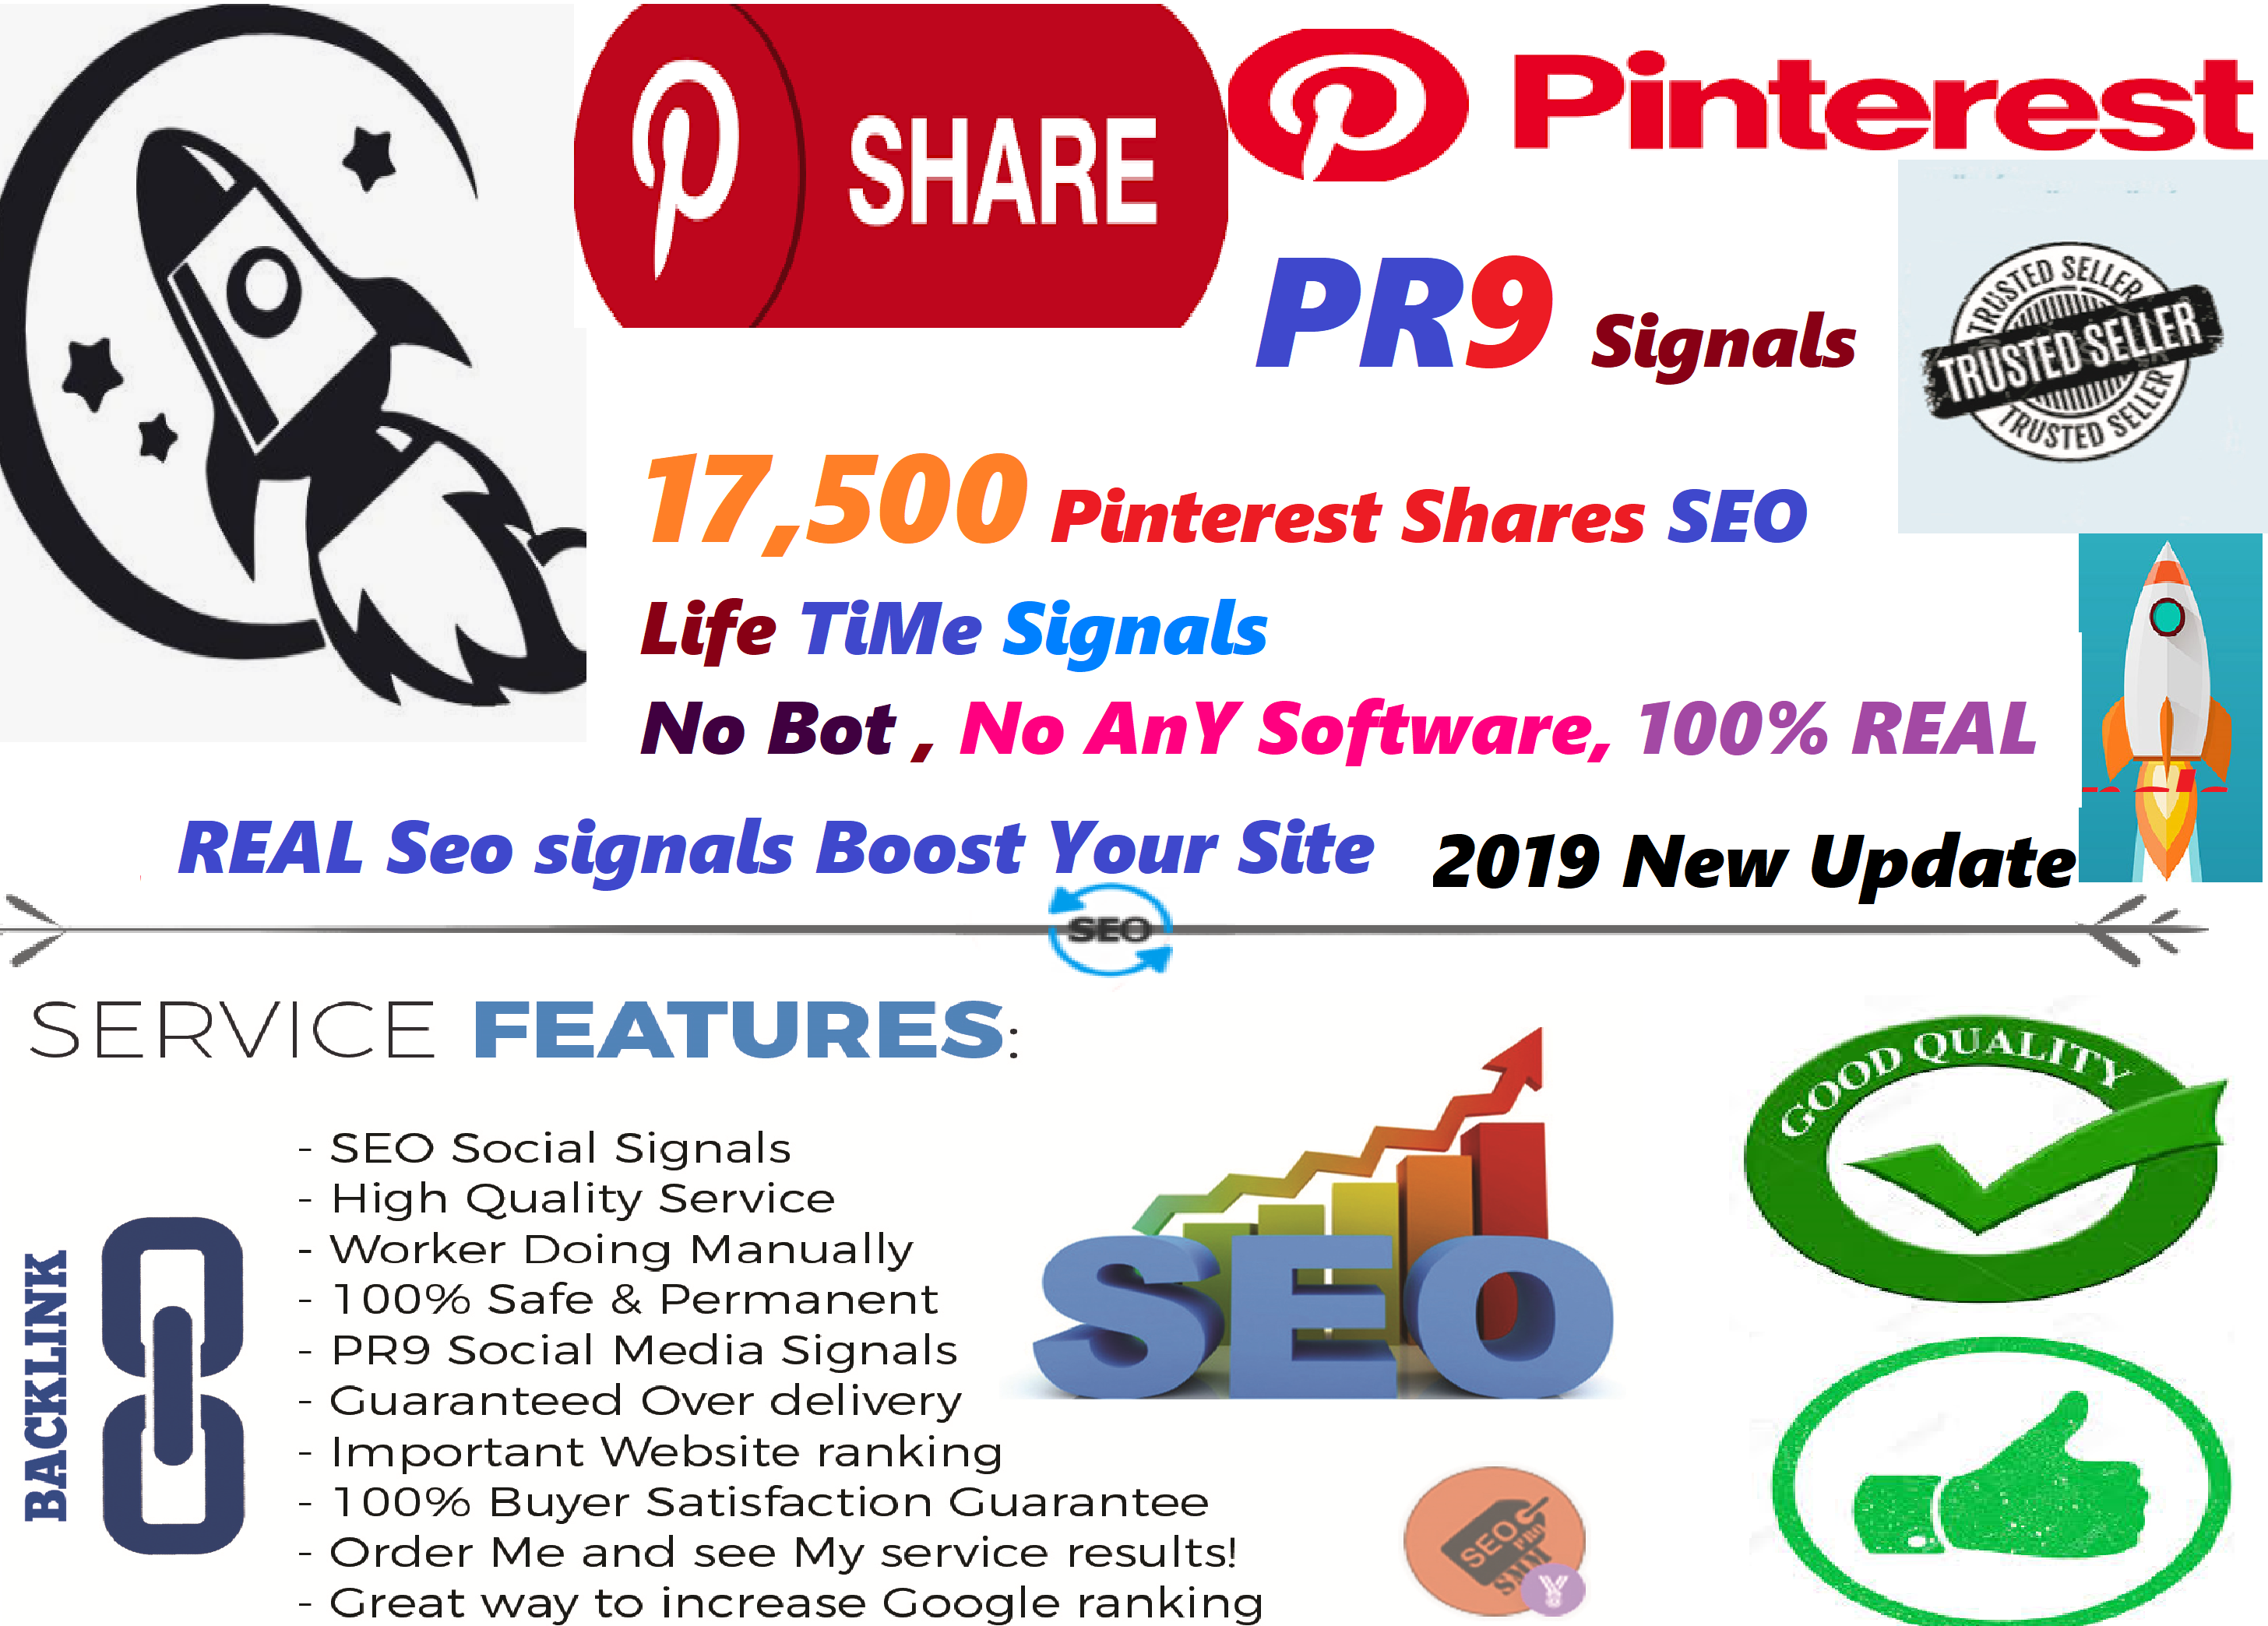 GET POWERFUL 17,500 PINTEREST SHARE SOCIAL SIGNALS FROM ONLY HIGH PR BACKLINKS TO WEBSITE IMPROVING